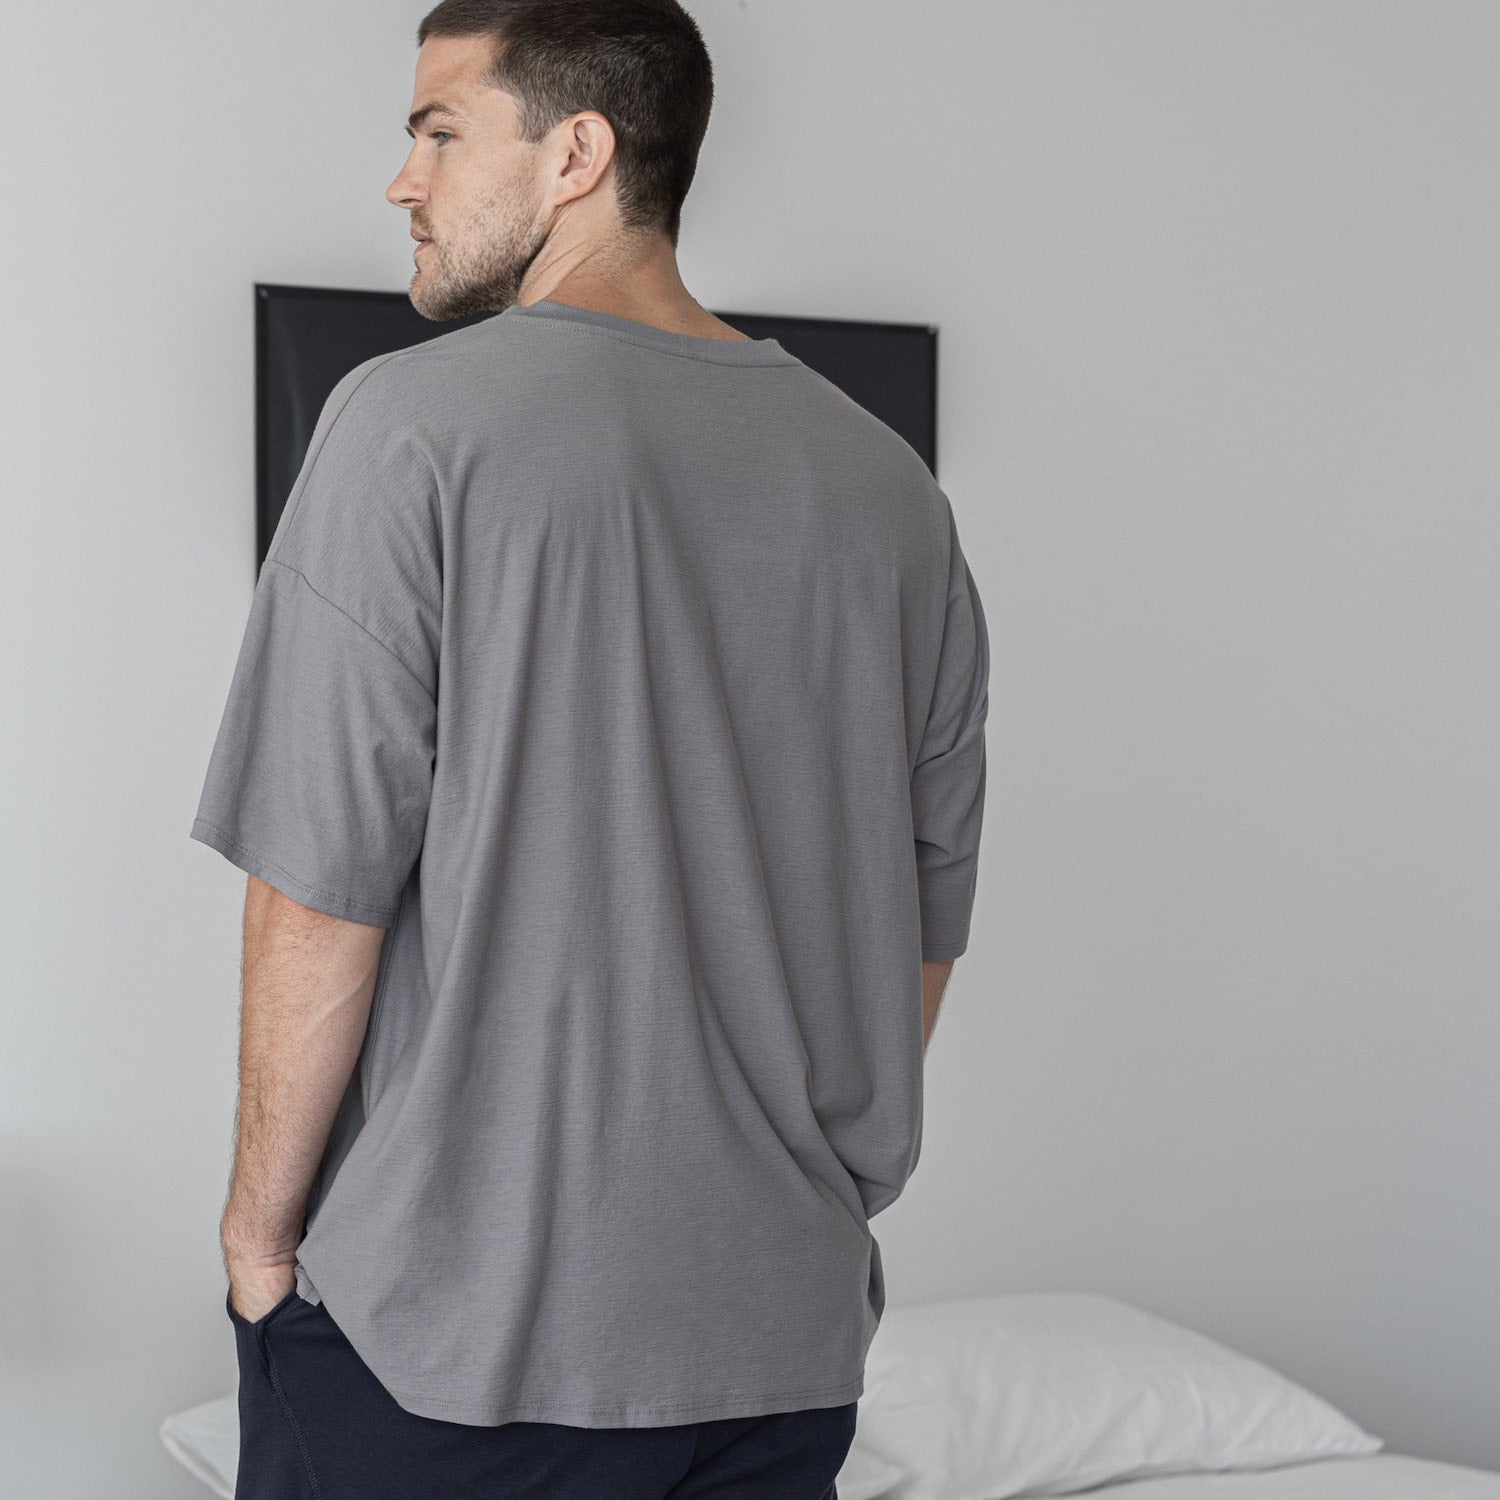 Lahgo Sleepwear Cool Short Sleeve Tee - #Slate